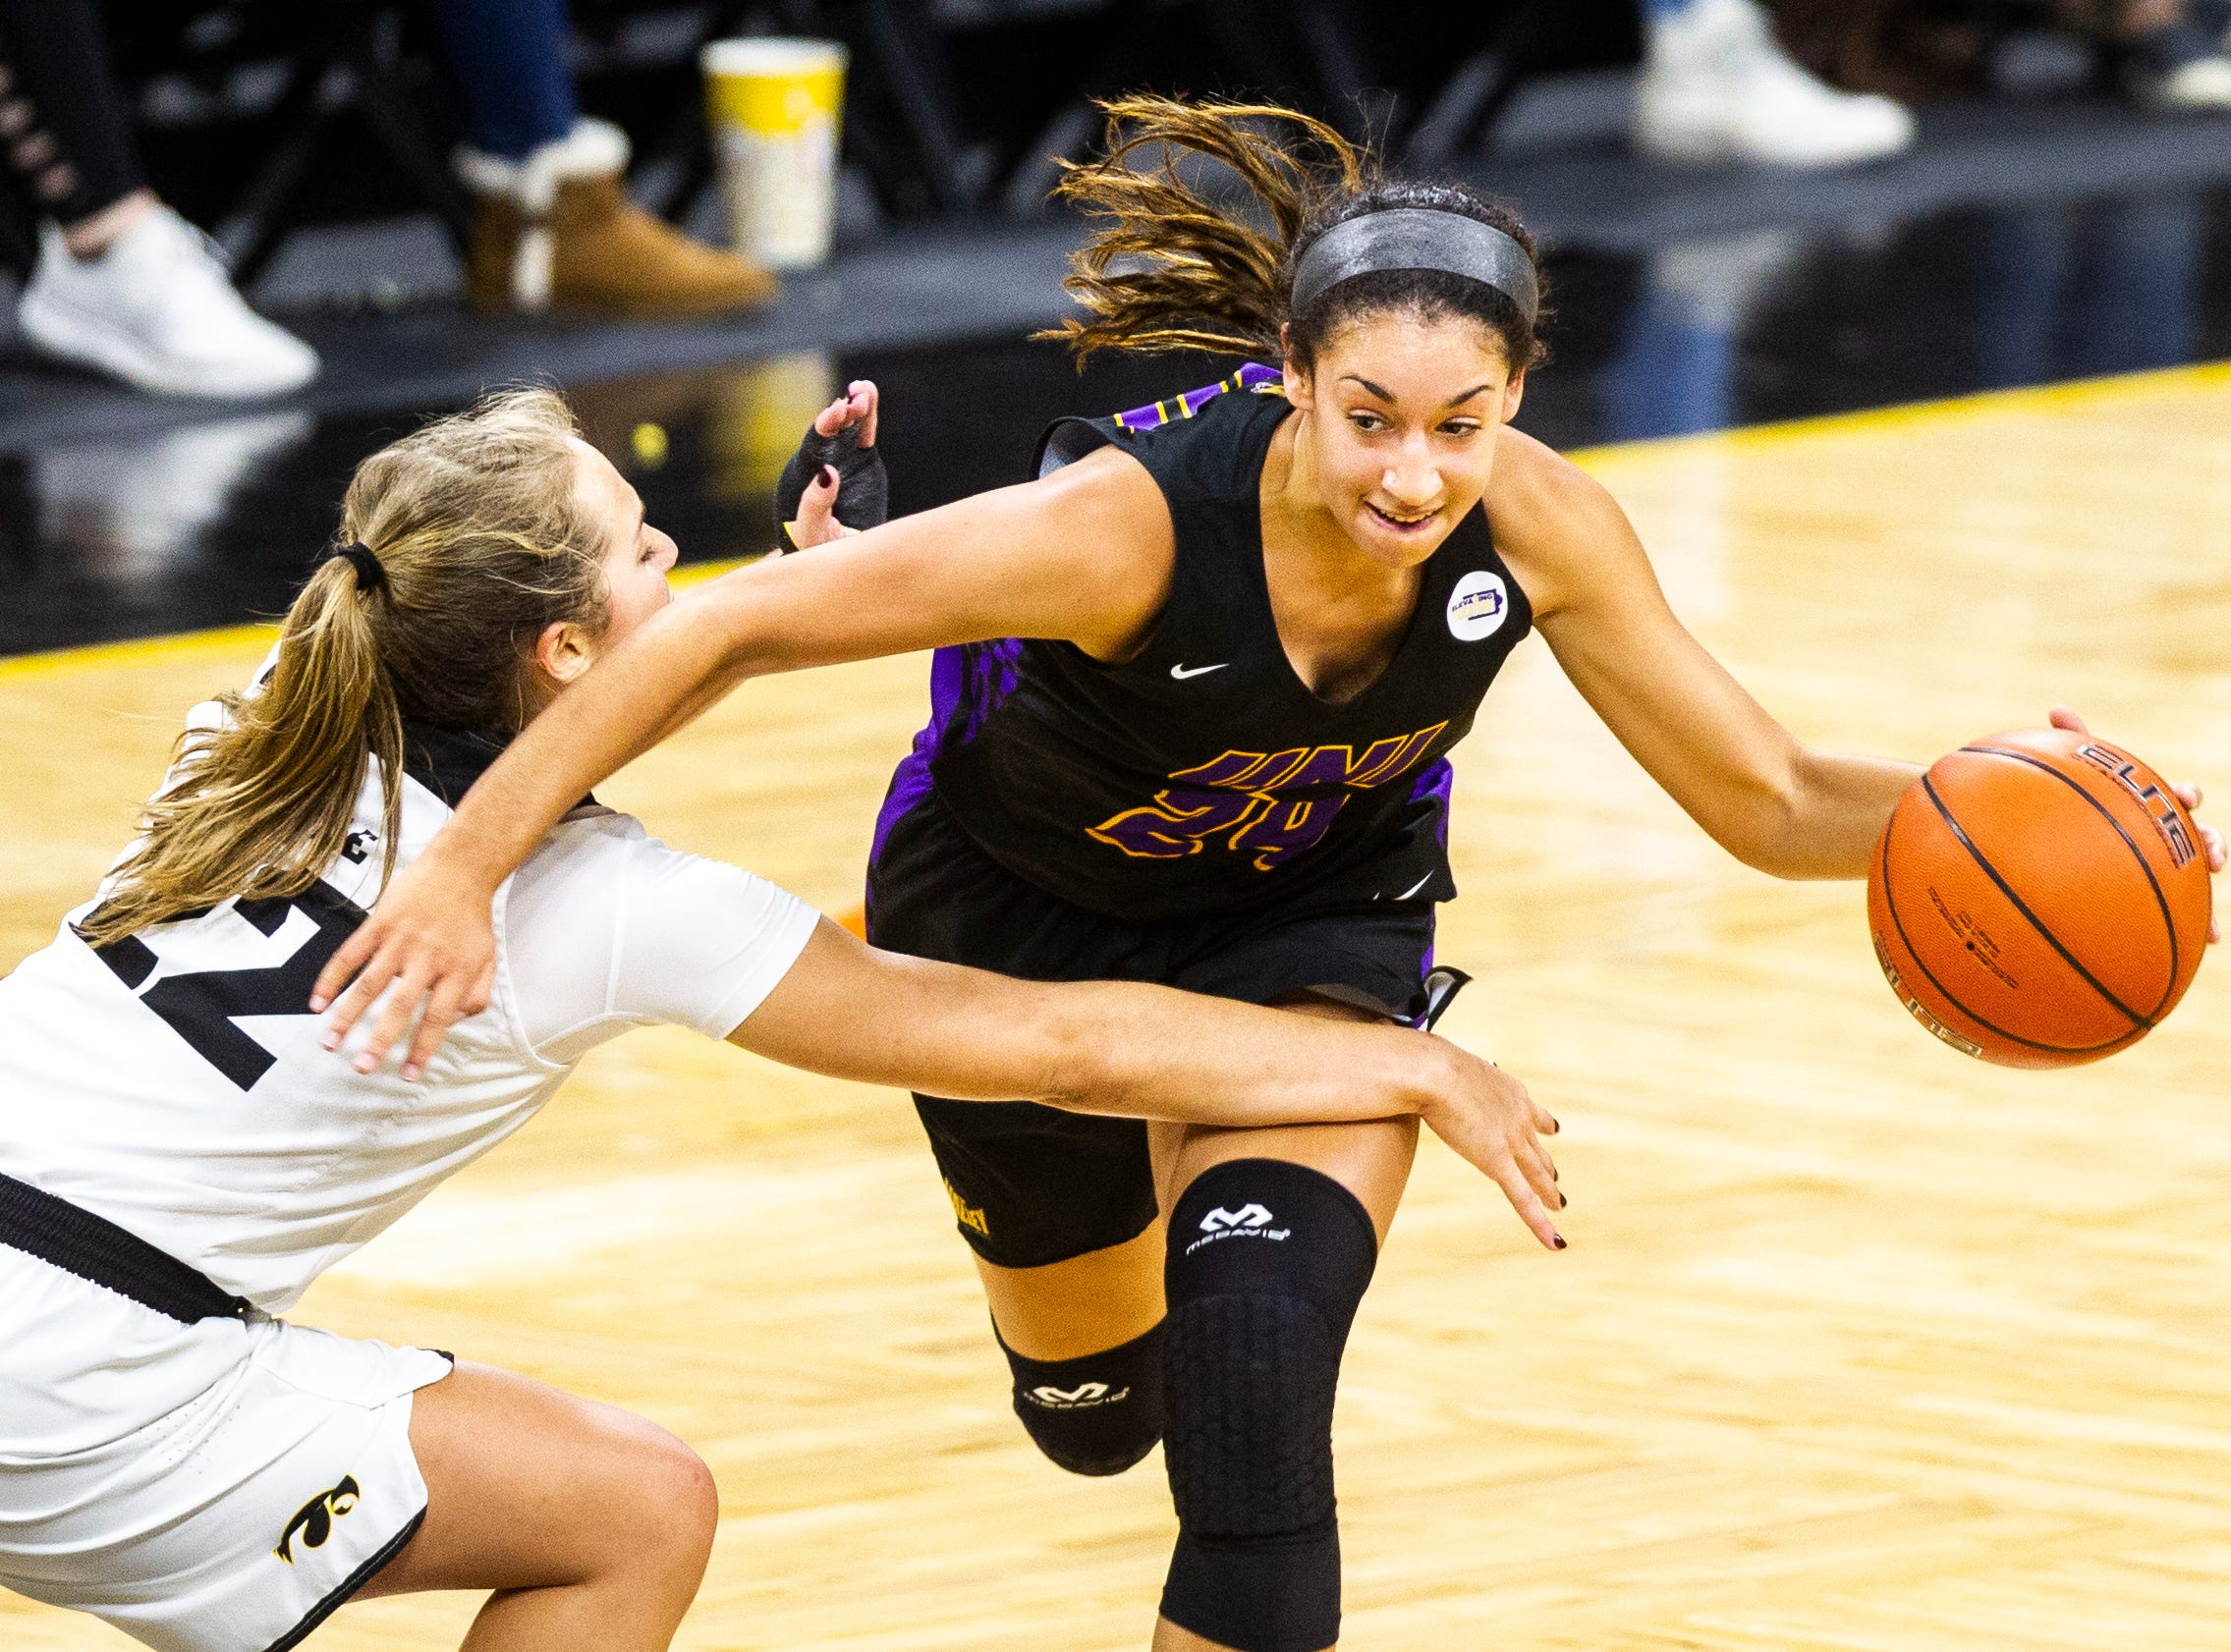 Northern Iowa guard Mikaela Morgan (24) drives past Iowa guard Kathleen Doyle (22) during a NCAA women's basketball game on Sunday, Dec. 16, 2018, at Carver-Hawkeye Arena in Iowa City.